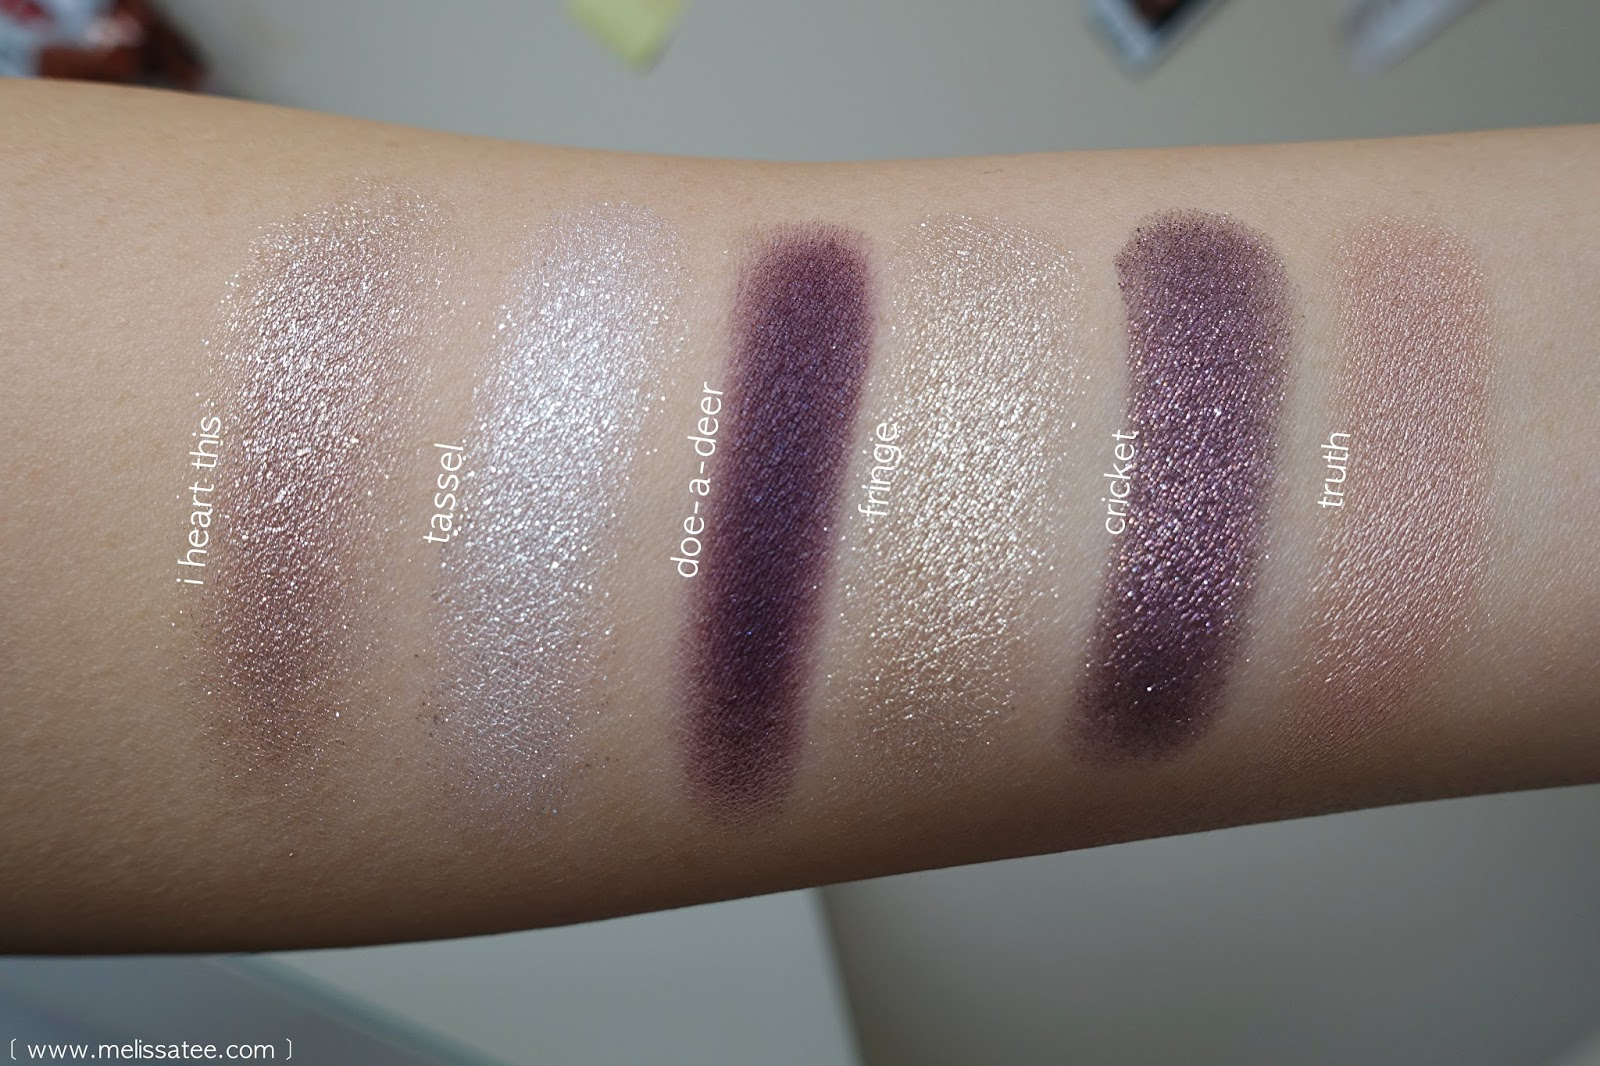 ColourPop Cosmetics, ColourPop, ColorPop, Colour Pop, Eyeshadows, Colourpop eyeshadow swatches, i heart this swatch, tassel swatch, doe-a-deer swatch, fringe swatch, cricket swatch, truth swatch